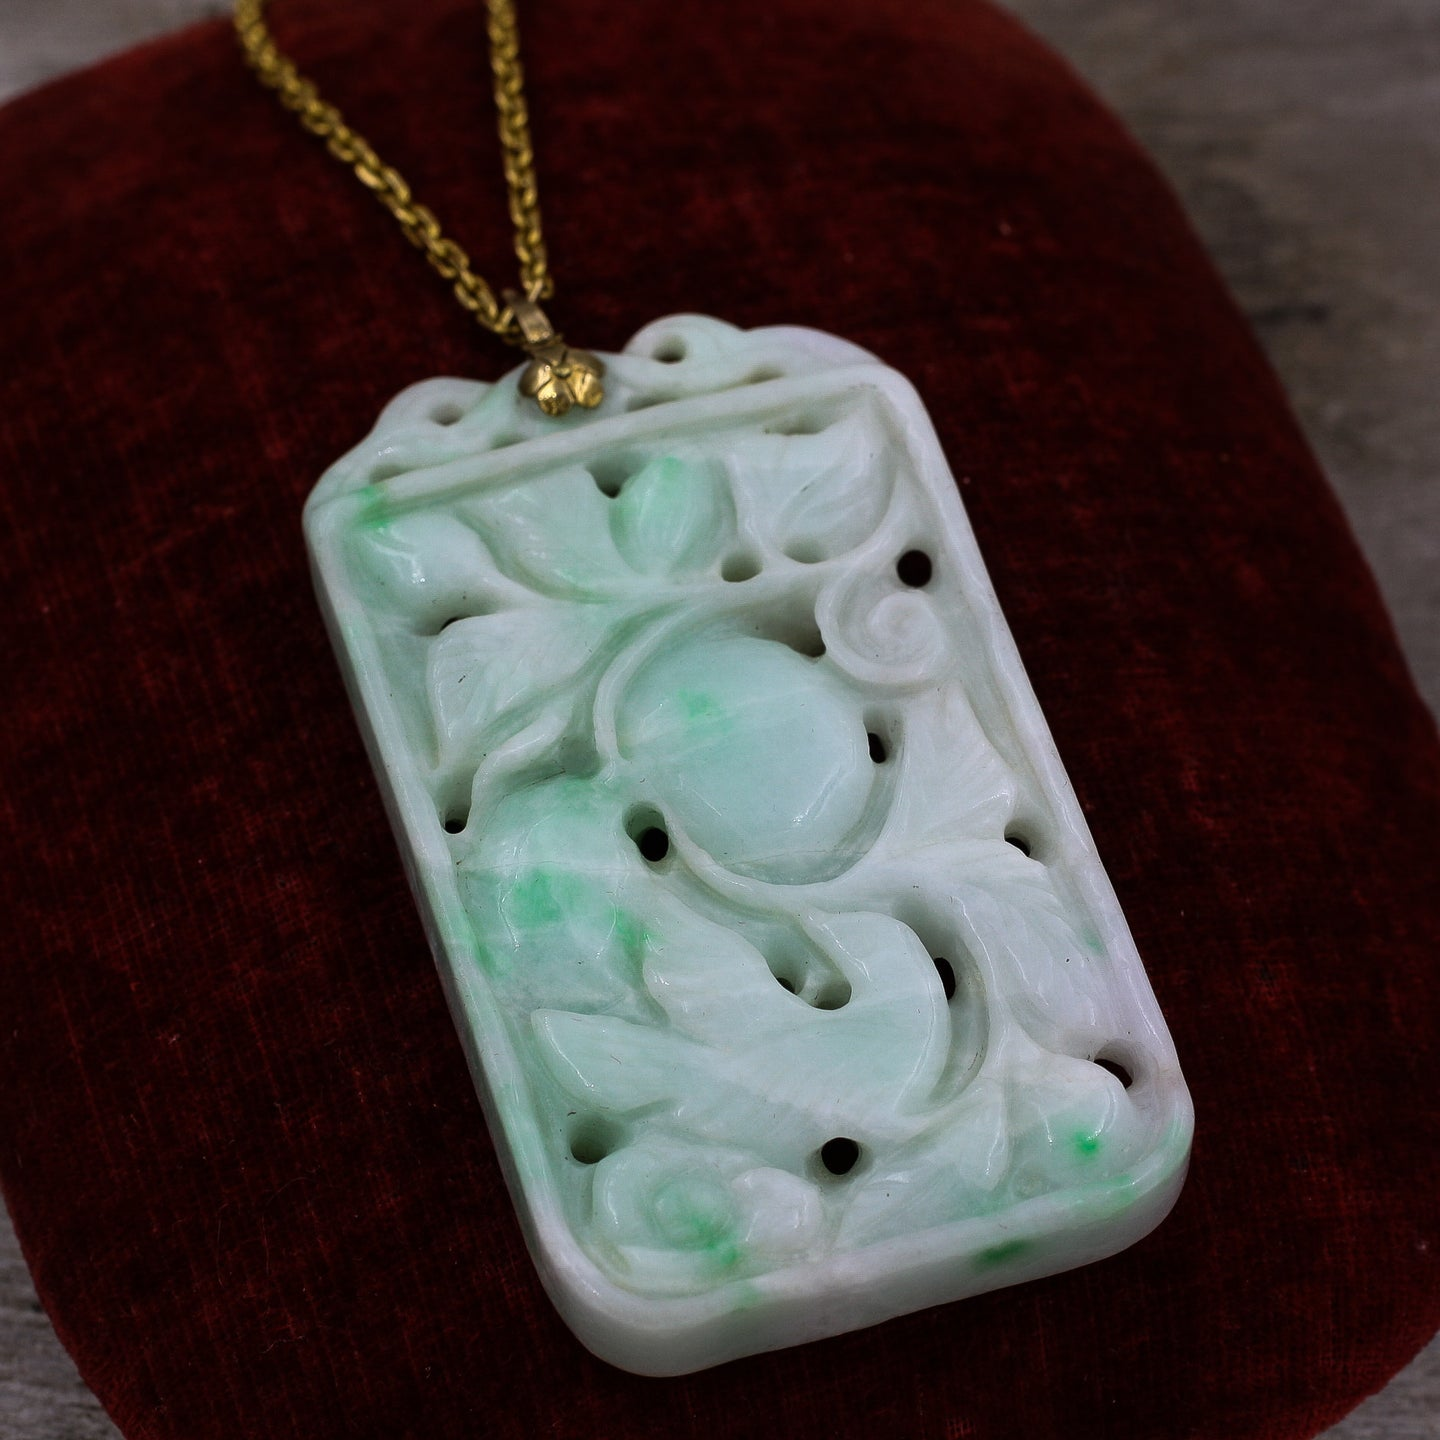 single enamel carved jade in necklaces diamond platinum id gorgeous art with and deco cut a at set j pendant jewelry necklace featuring accented l more